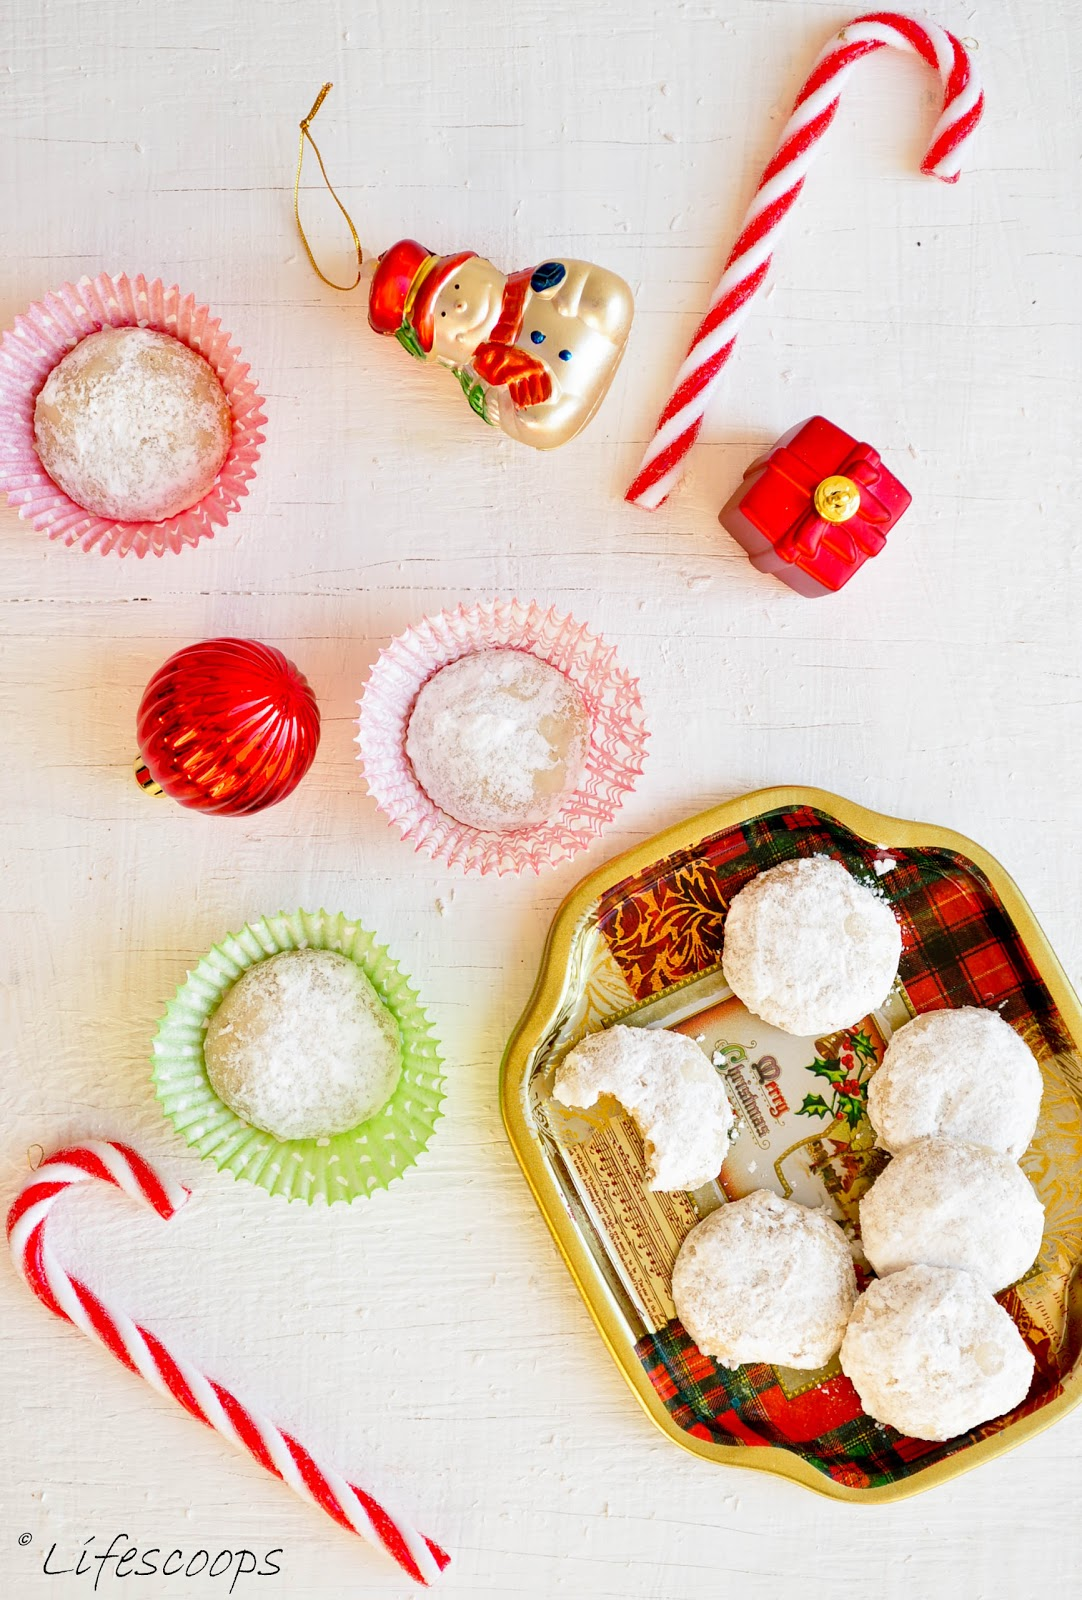 Italian Wedding Cookies / Mexican Wedding Cake Cookies / Snowball Cookies /  Russian Tea Cakes